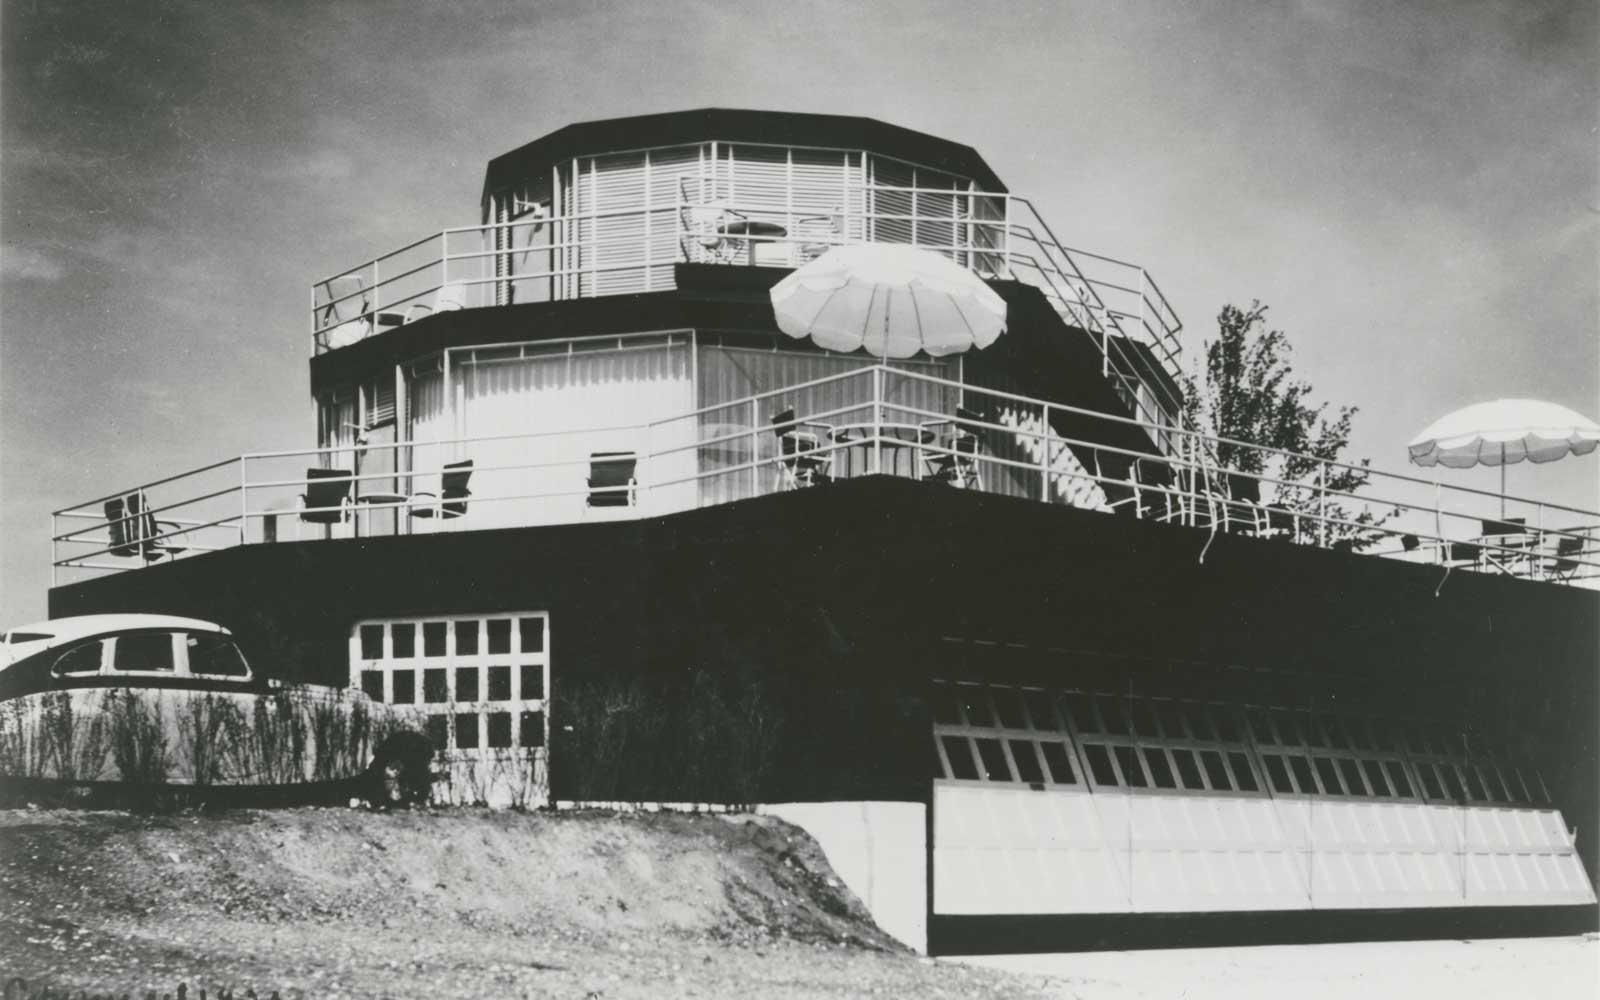 Original exterior of the House of Tomorrow, a Century of Progress display house